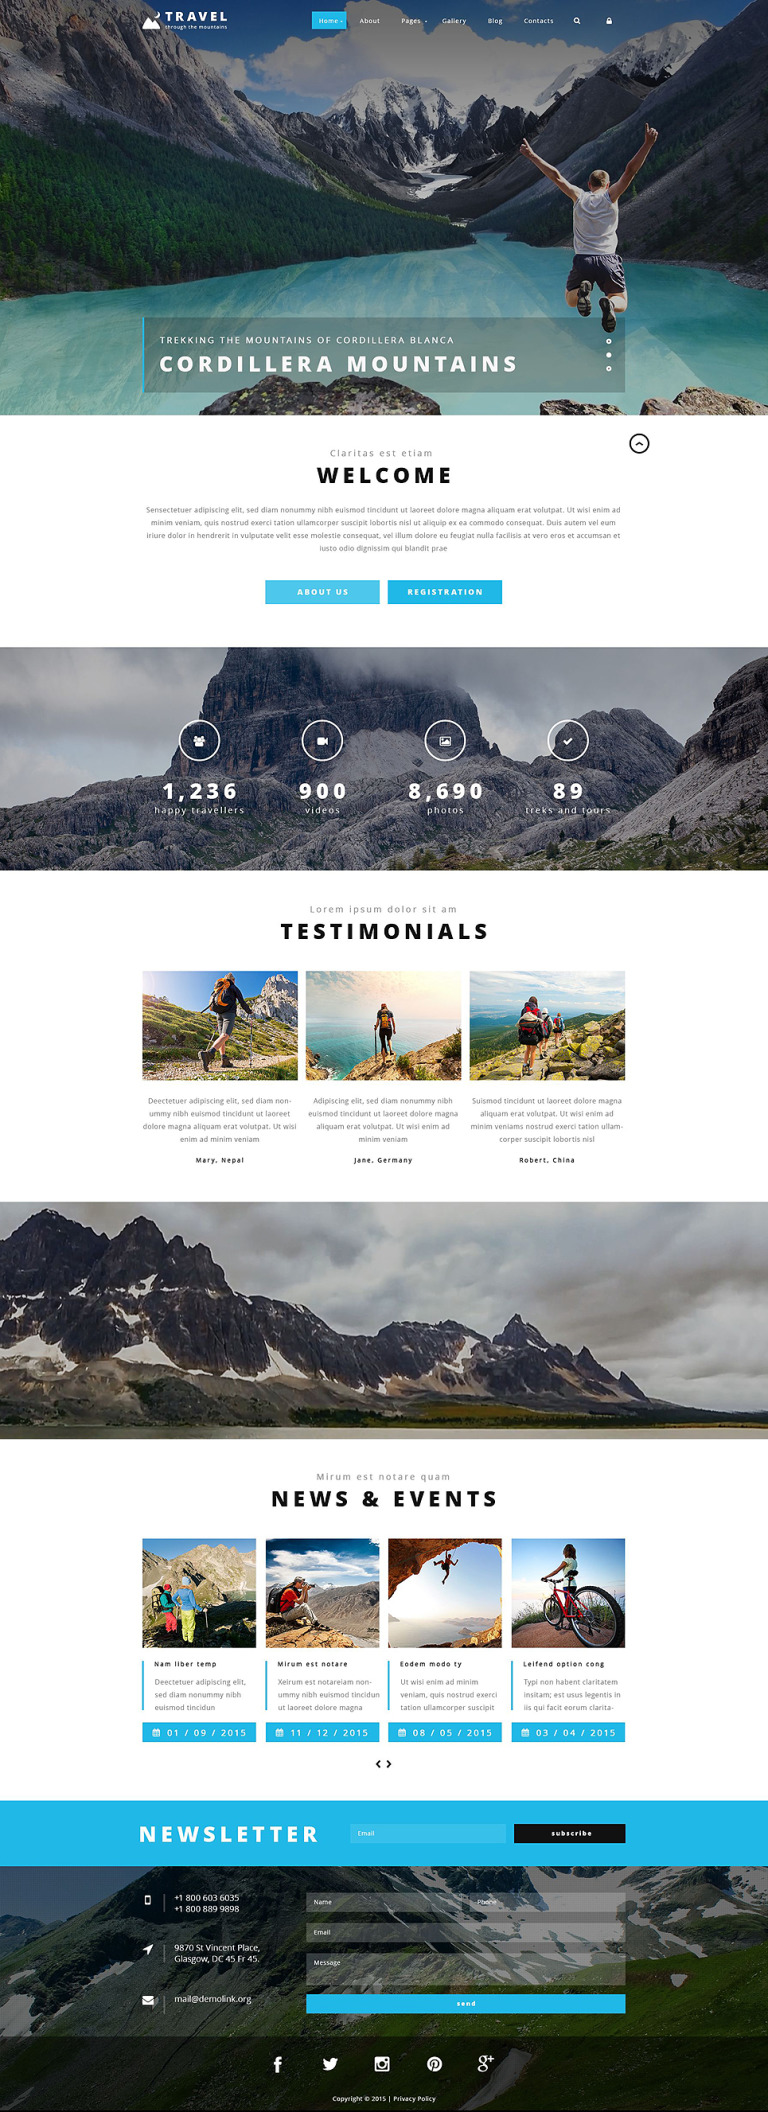 Travel Agency Joomla Template New Screenshots BIG